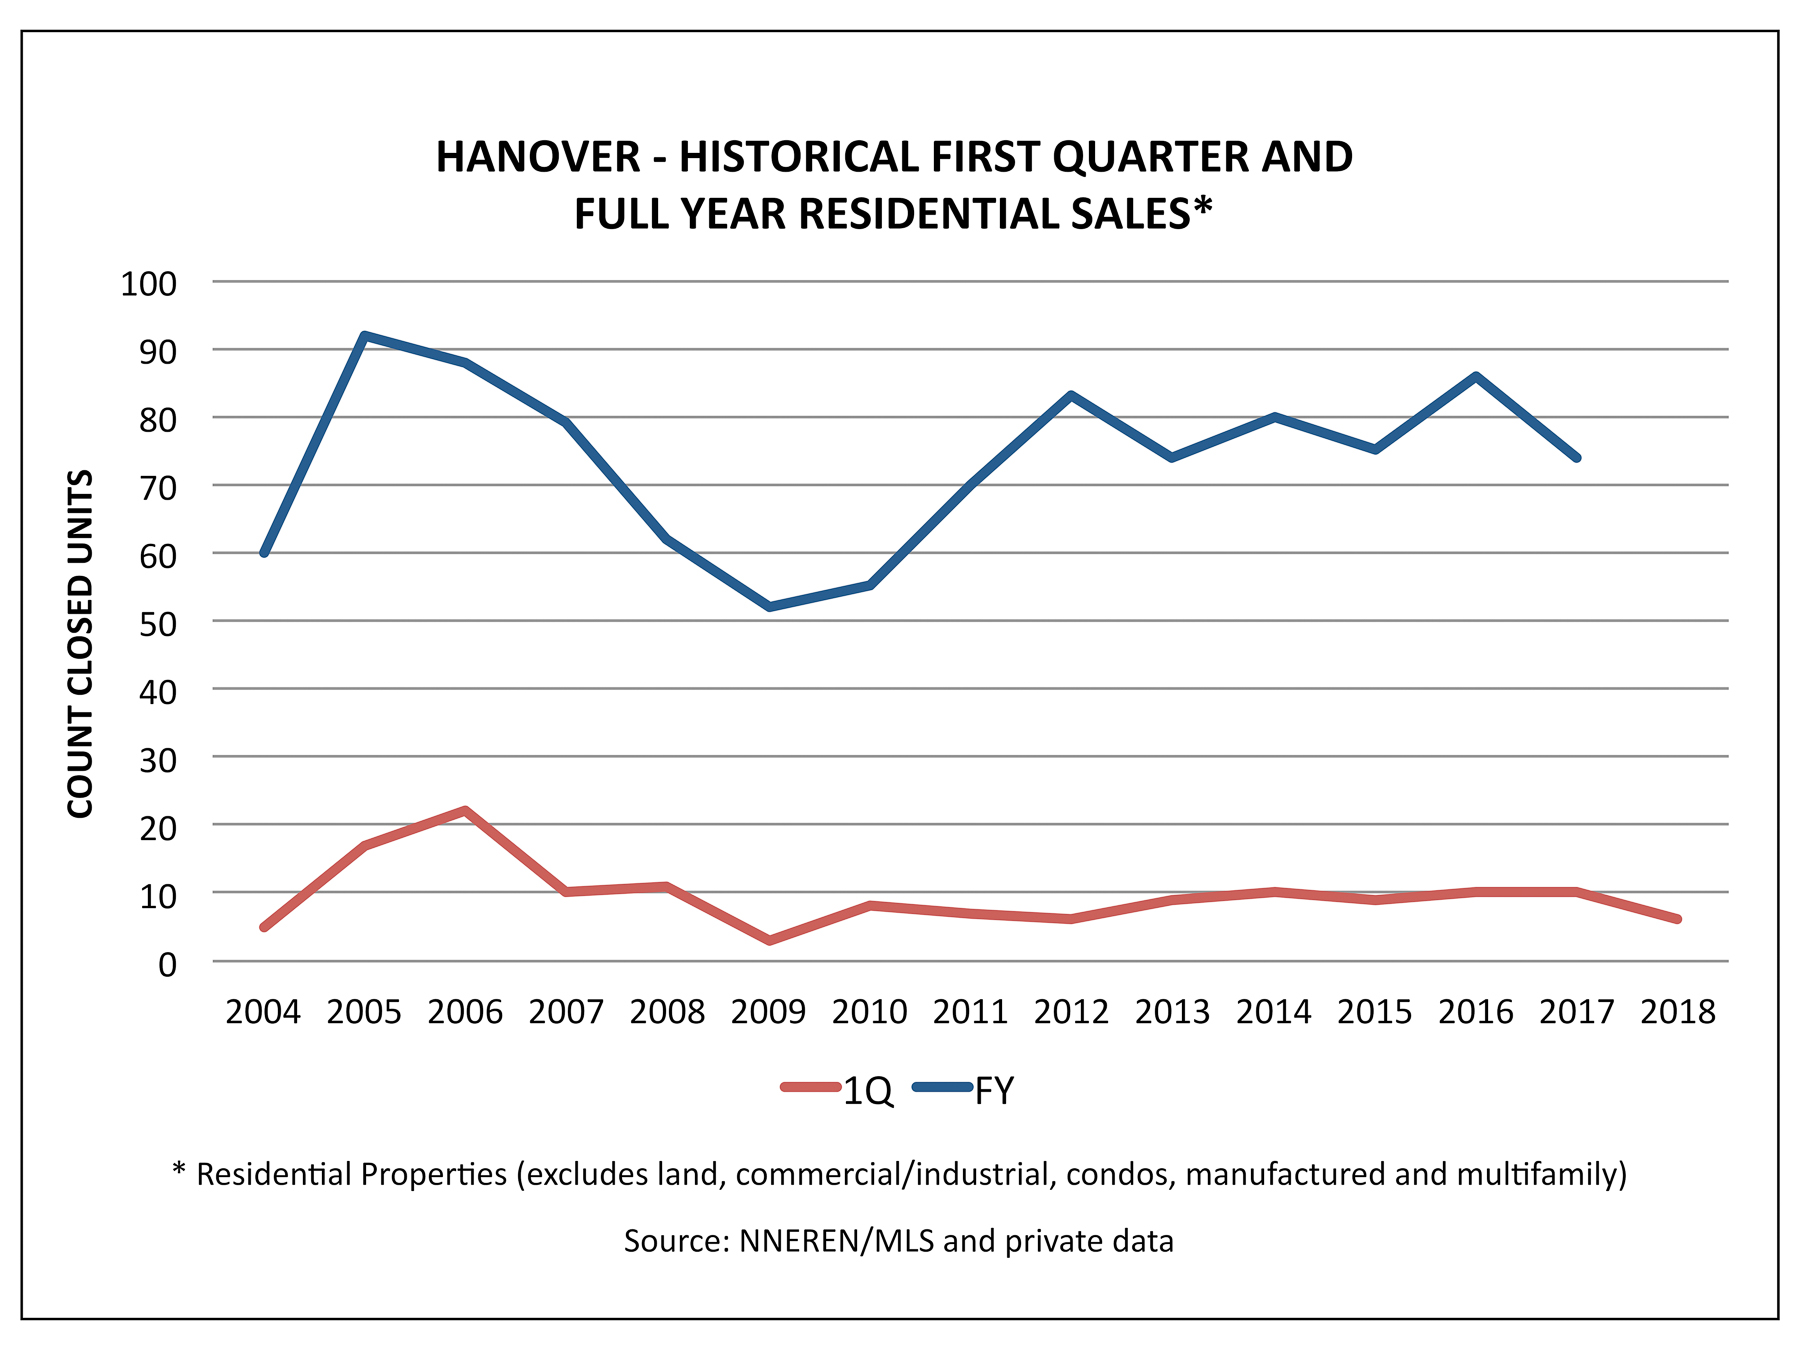 Hanover NH Real Estate - 1Q and FY Historical Home Sales